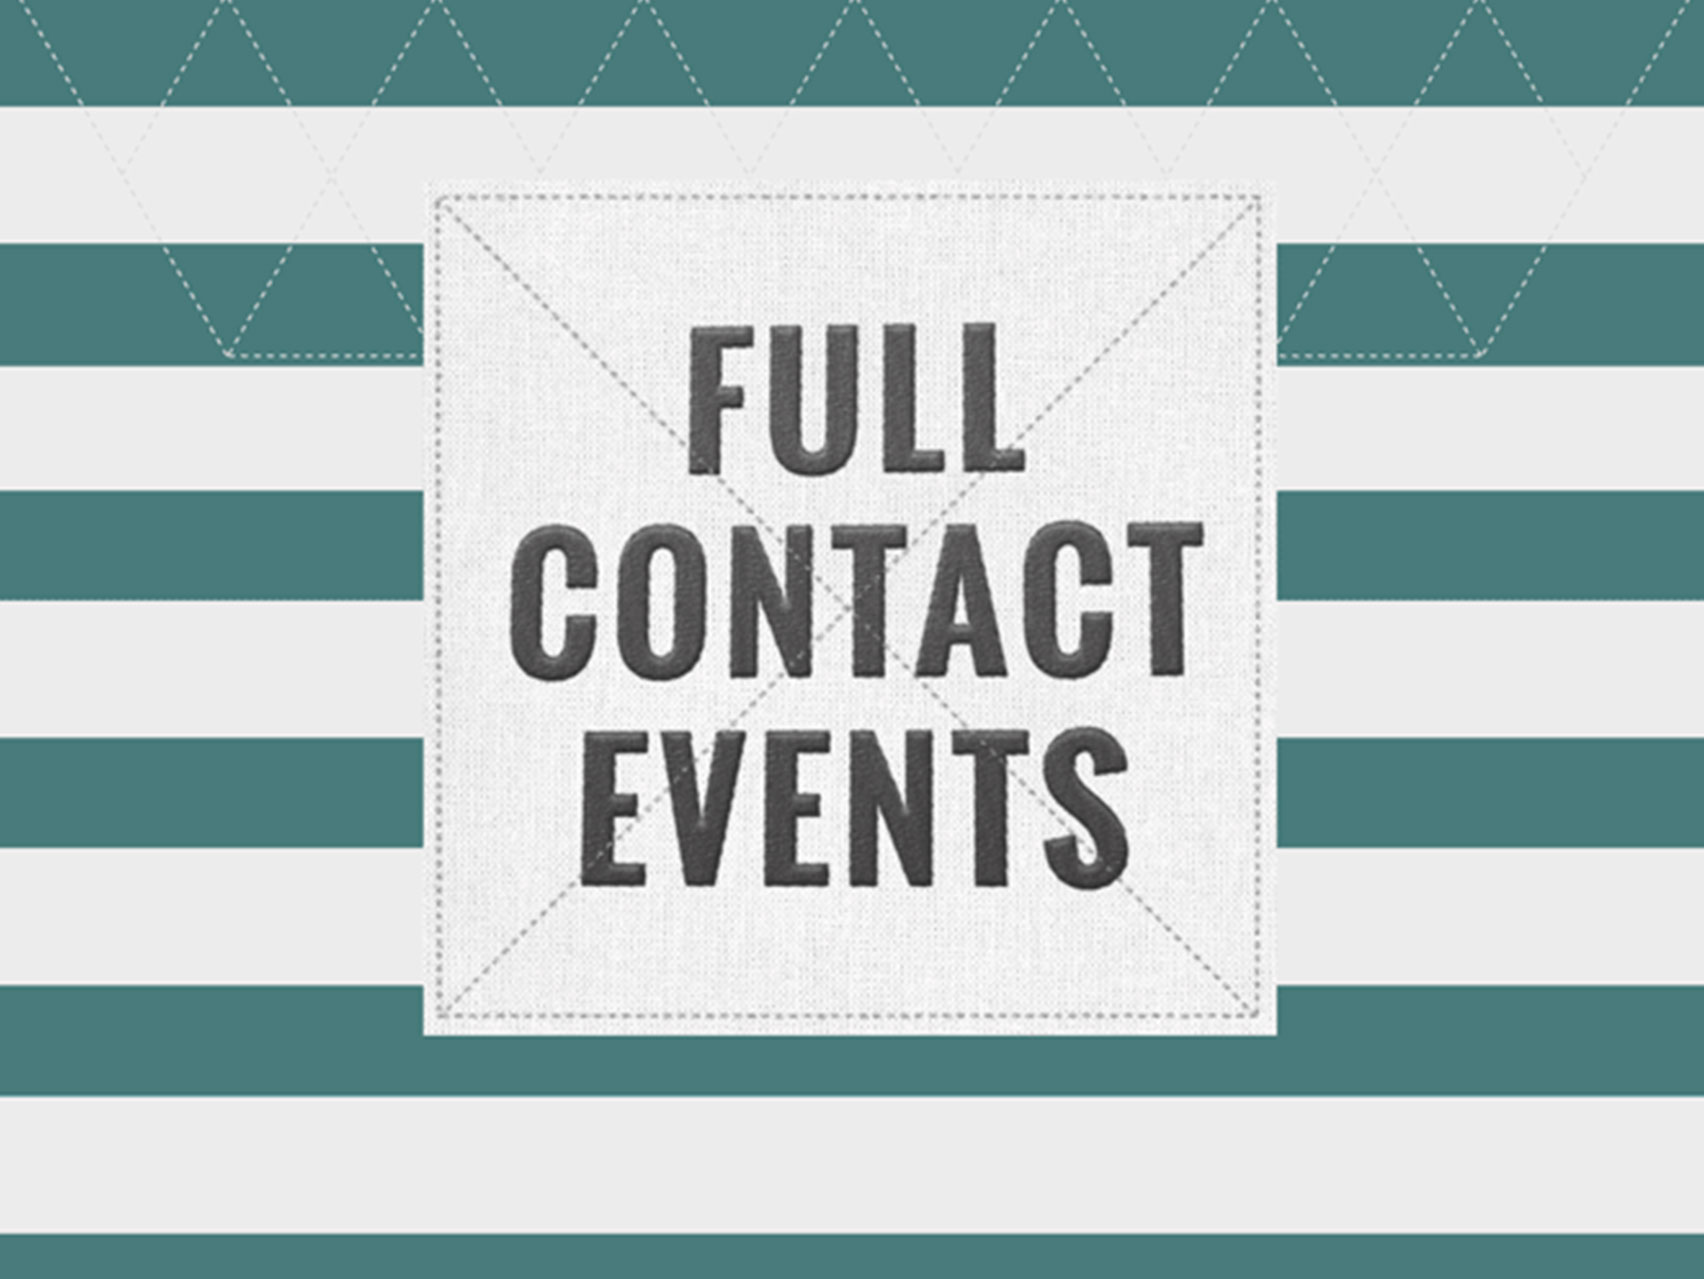 Full contact events logo design by collective